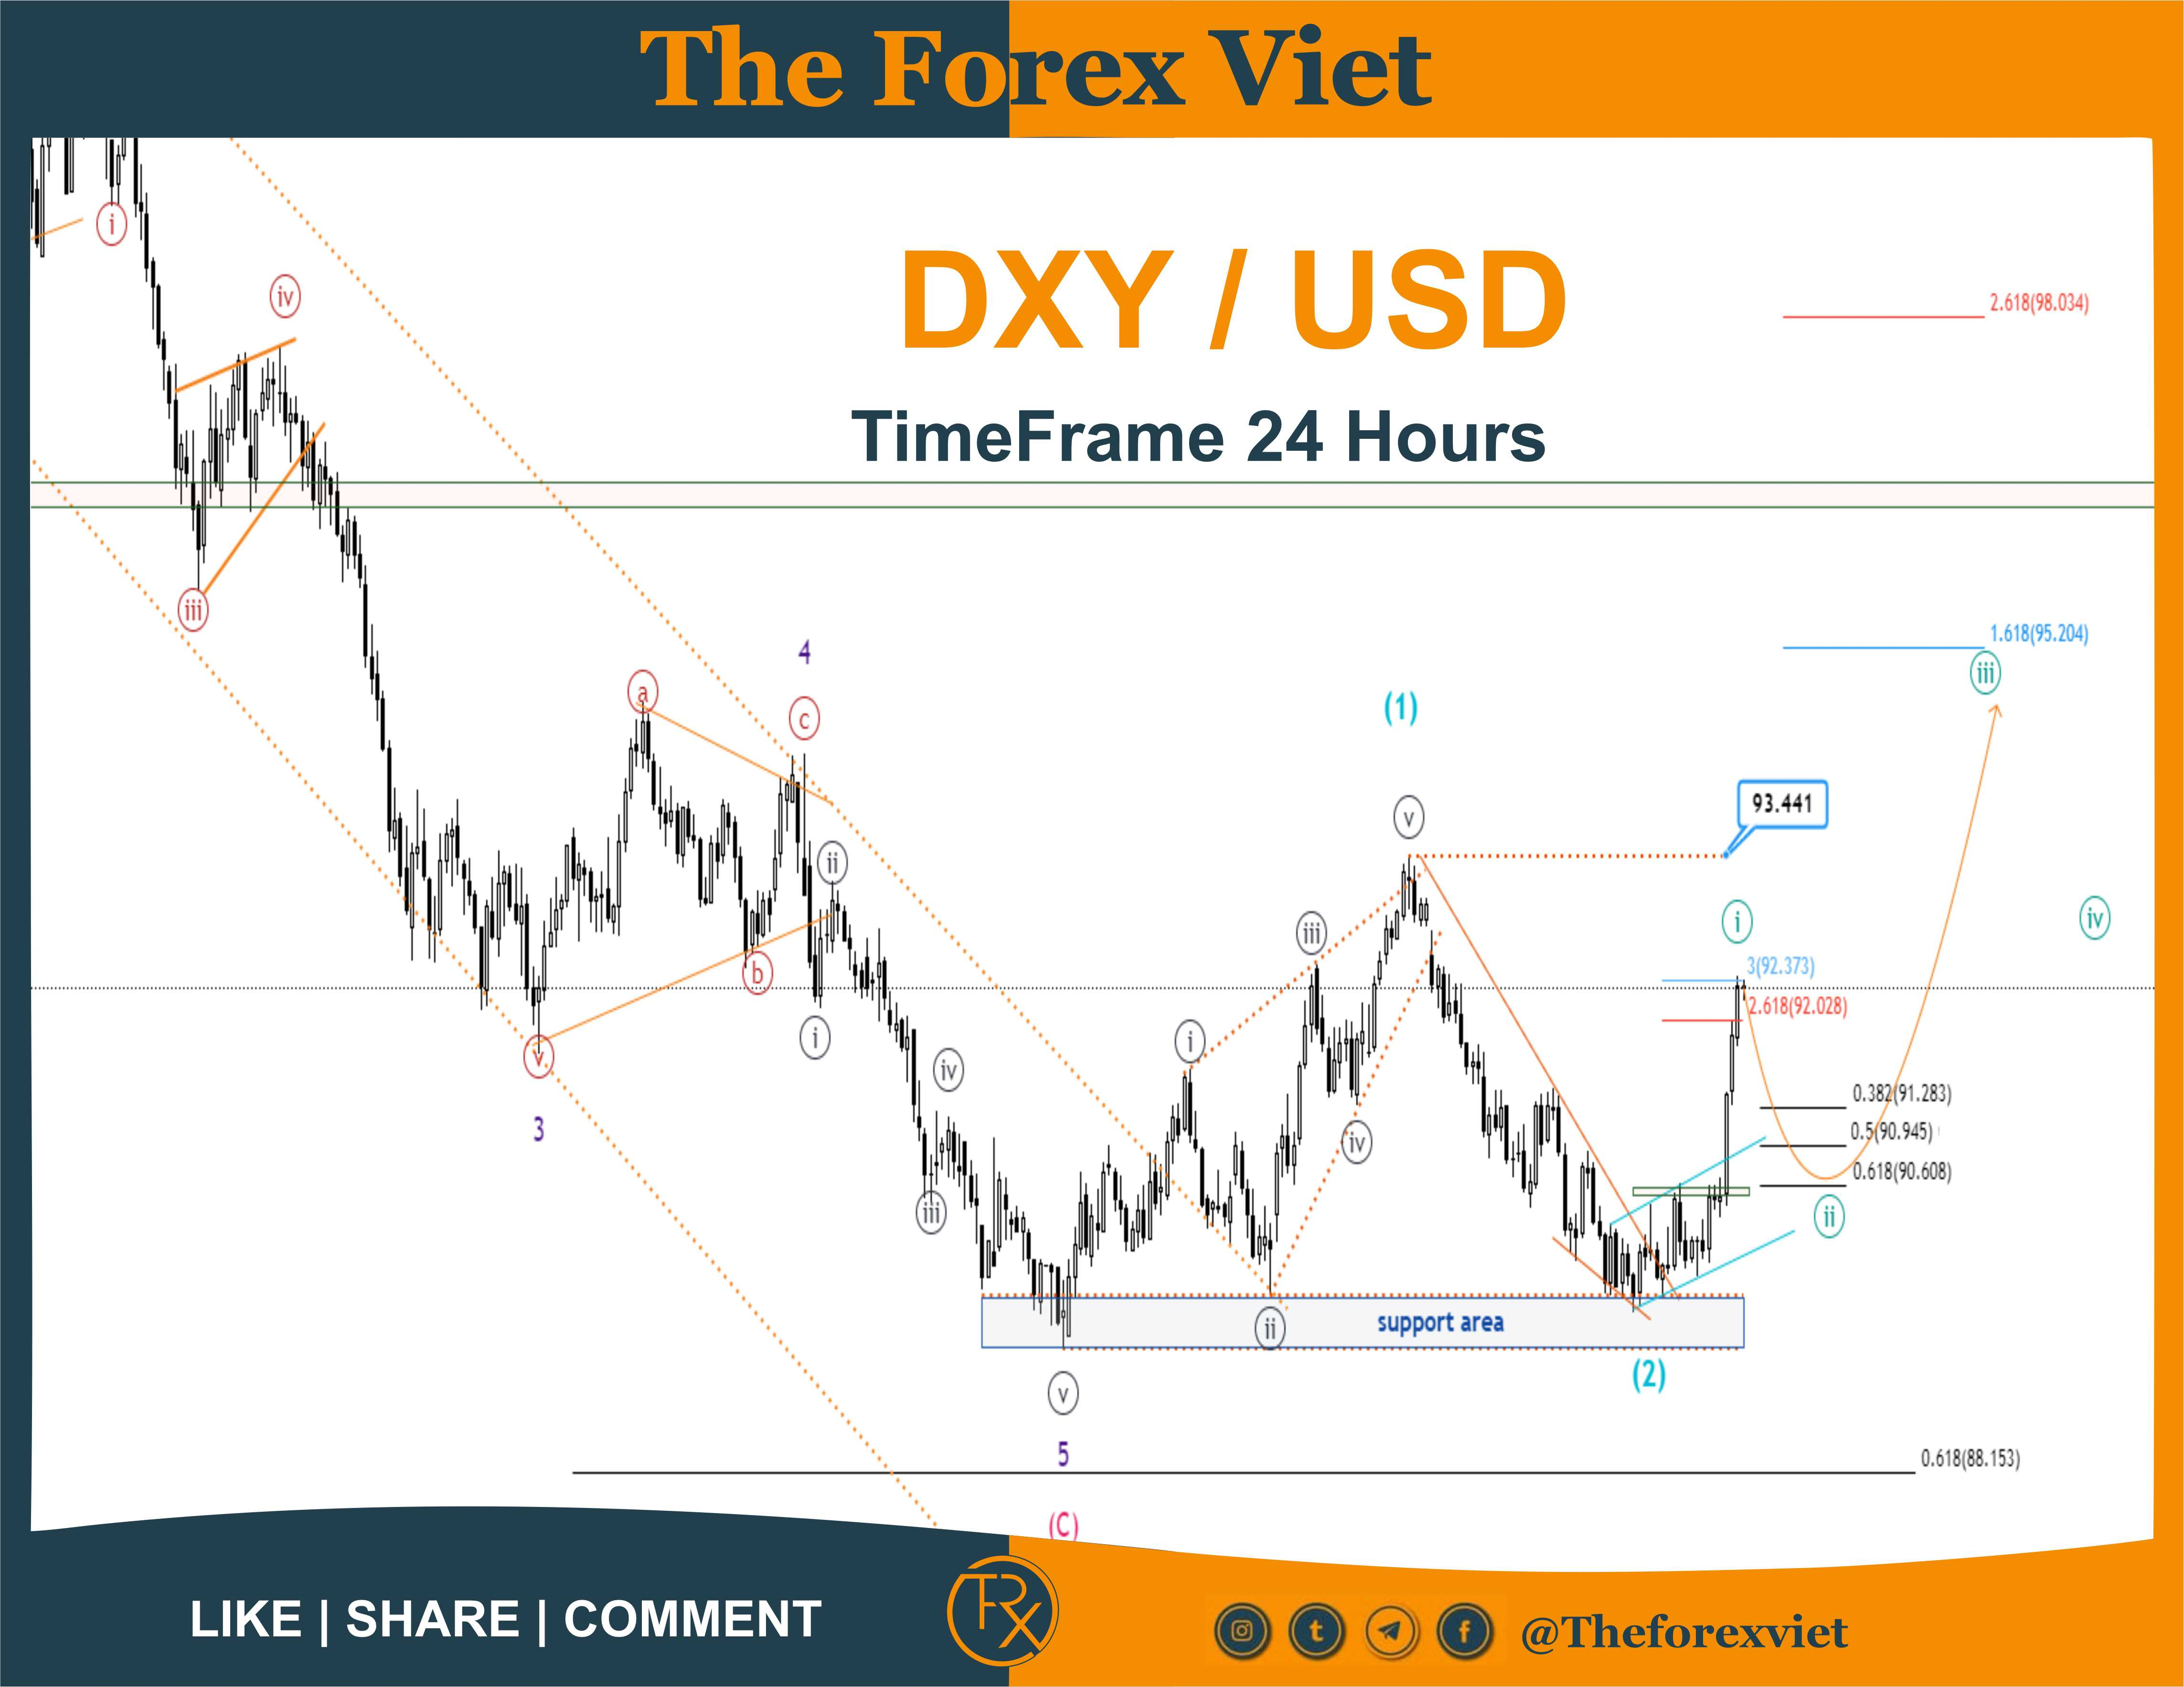 DXY Timeframe 24 hours - 21/06